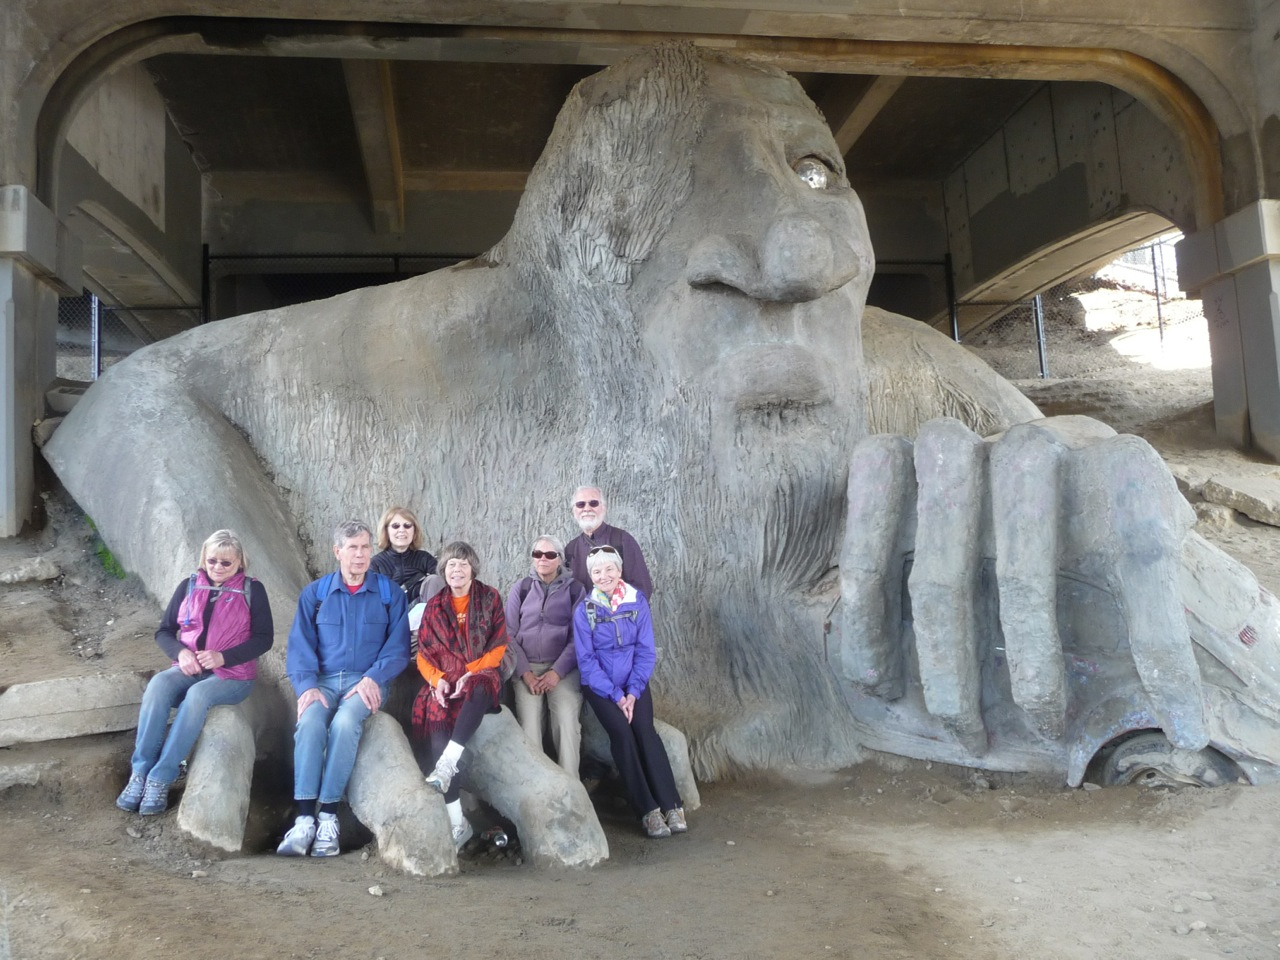 Frances, Al, Judy, Kathy, Kathryn, Dan, Annie sit on the Fremont Troll.